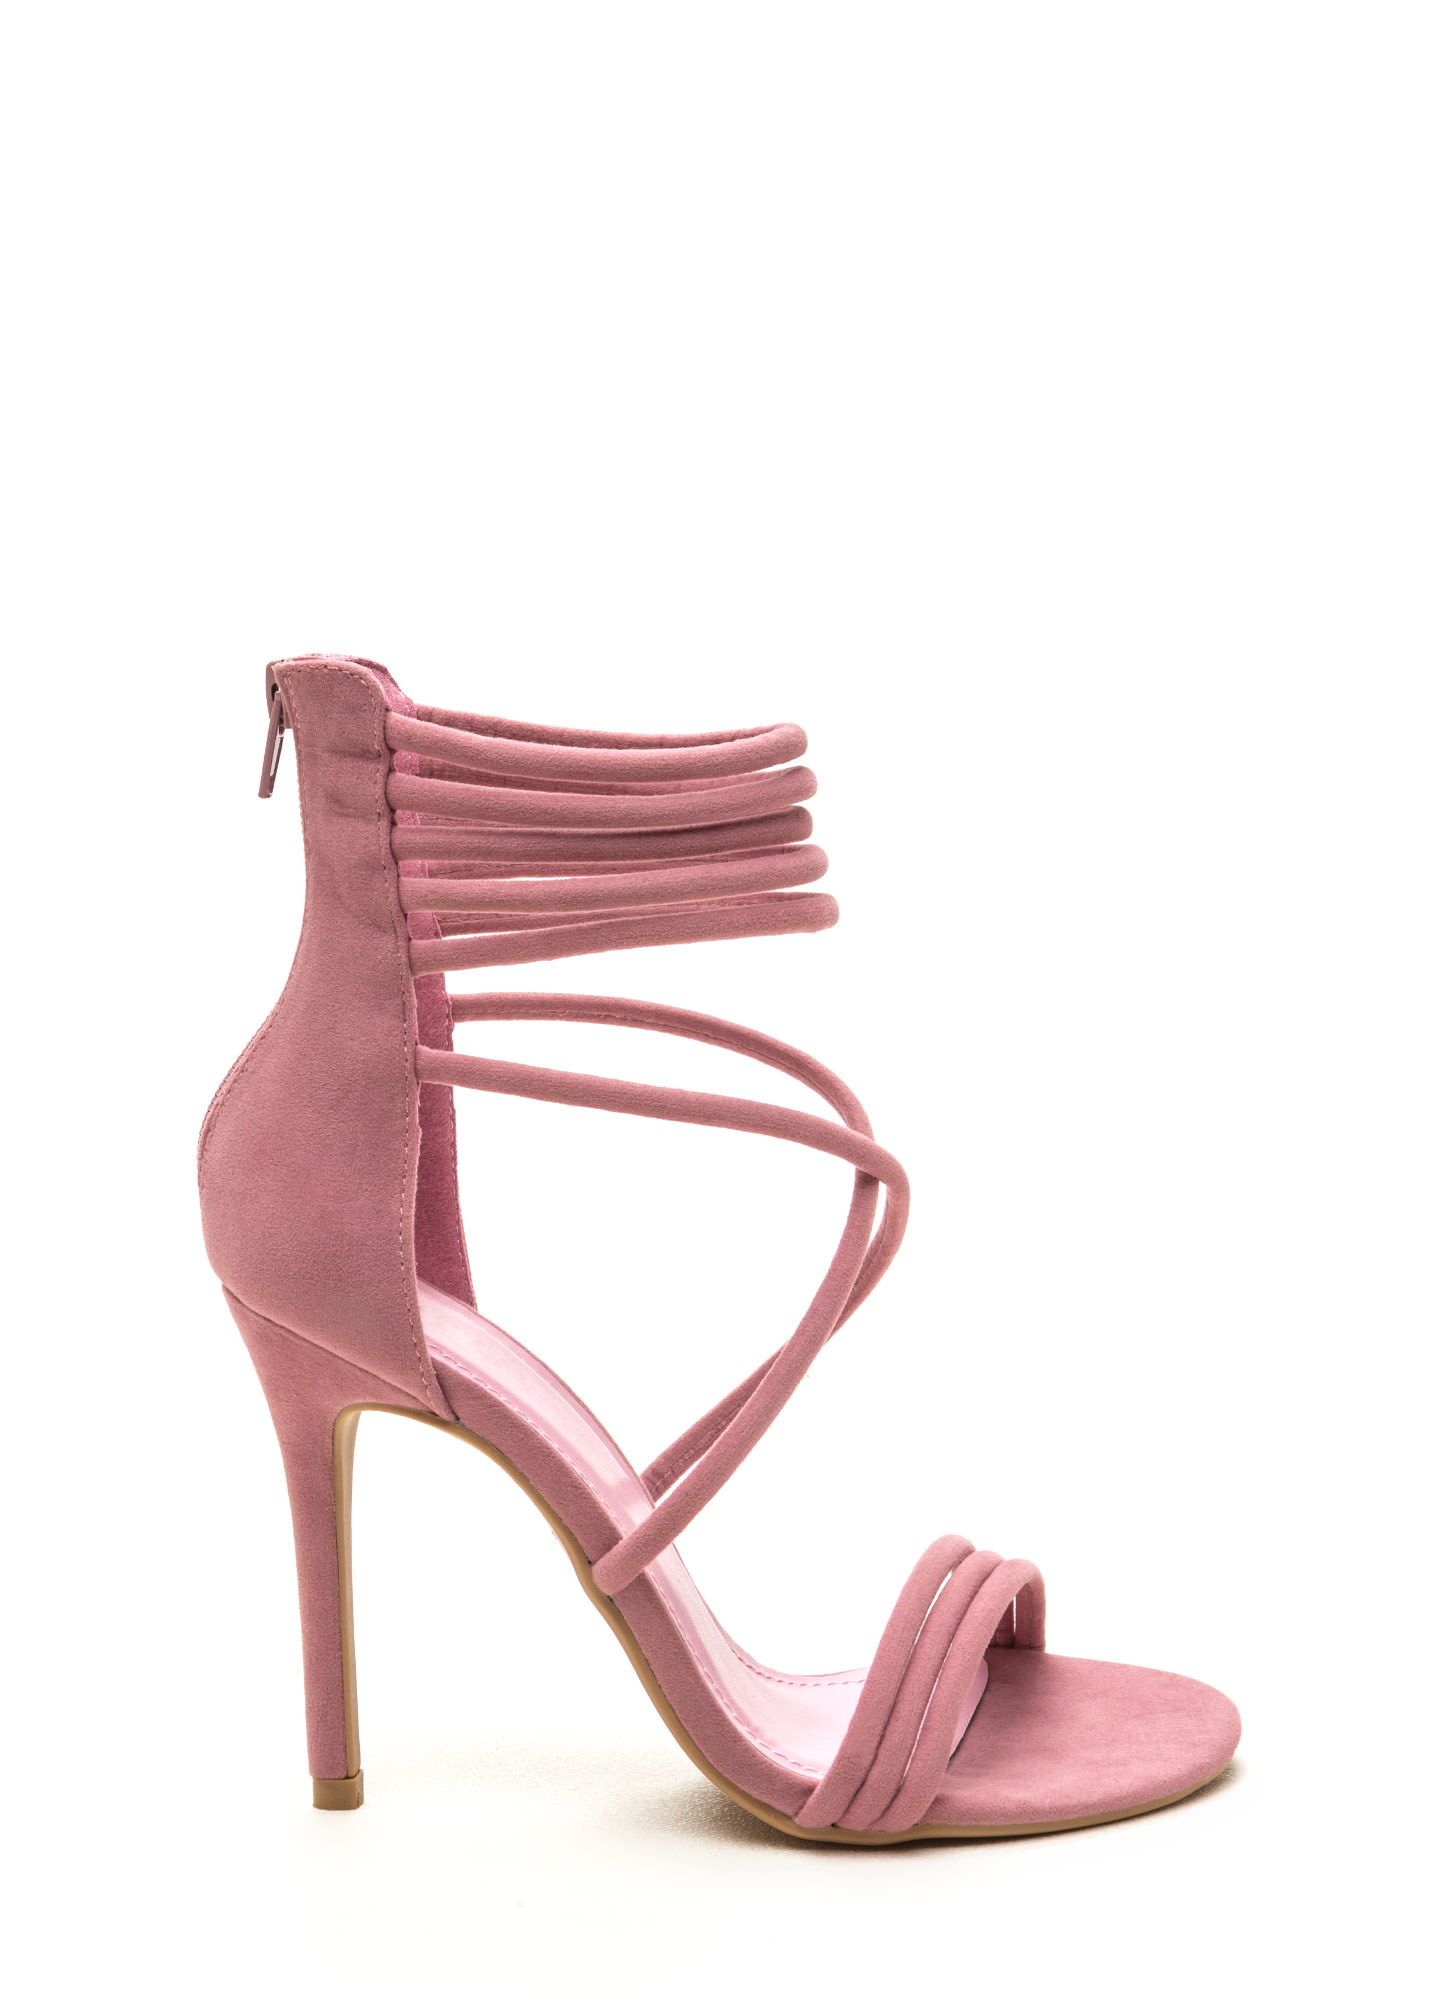 how to get soft heels